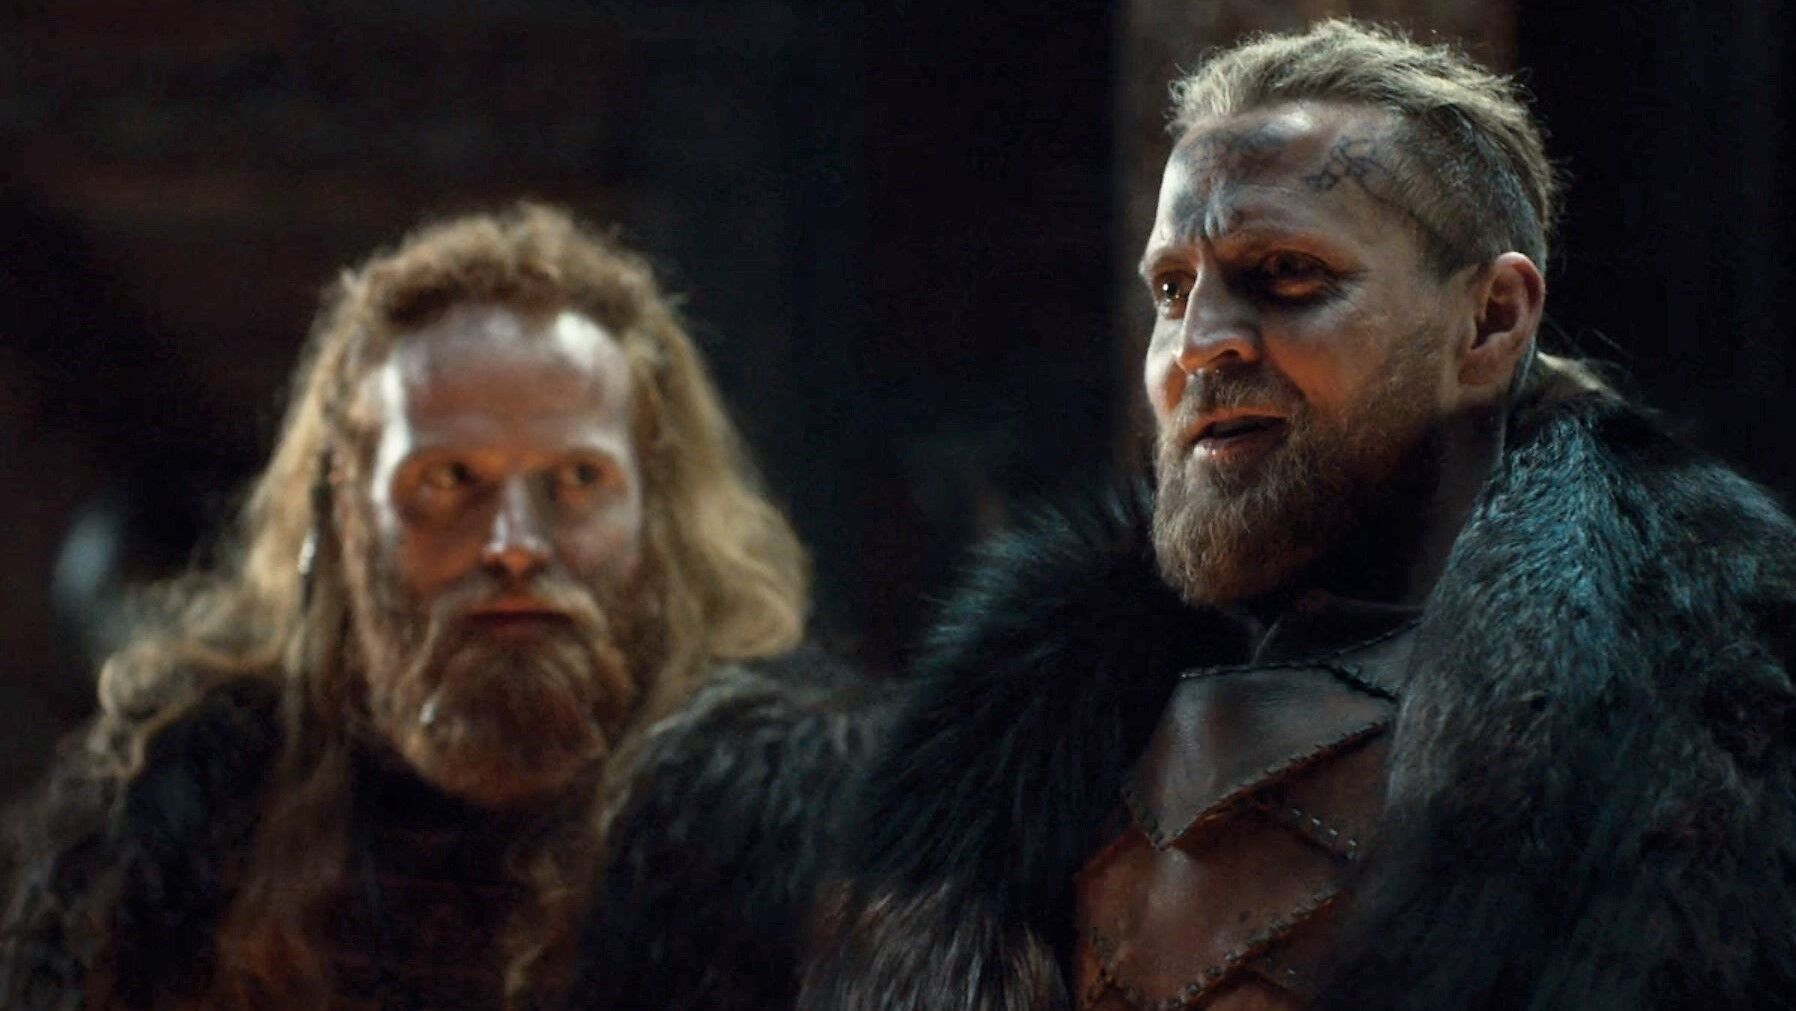 The Last Kingdom star Magnus Bruun explains why Cnut conspired to kill Ragnar